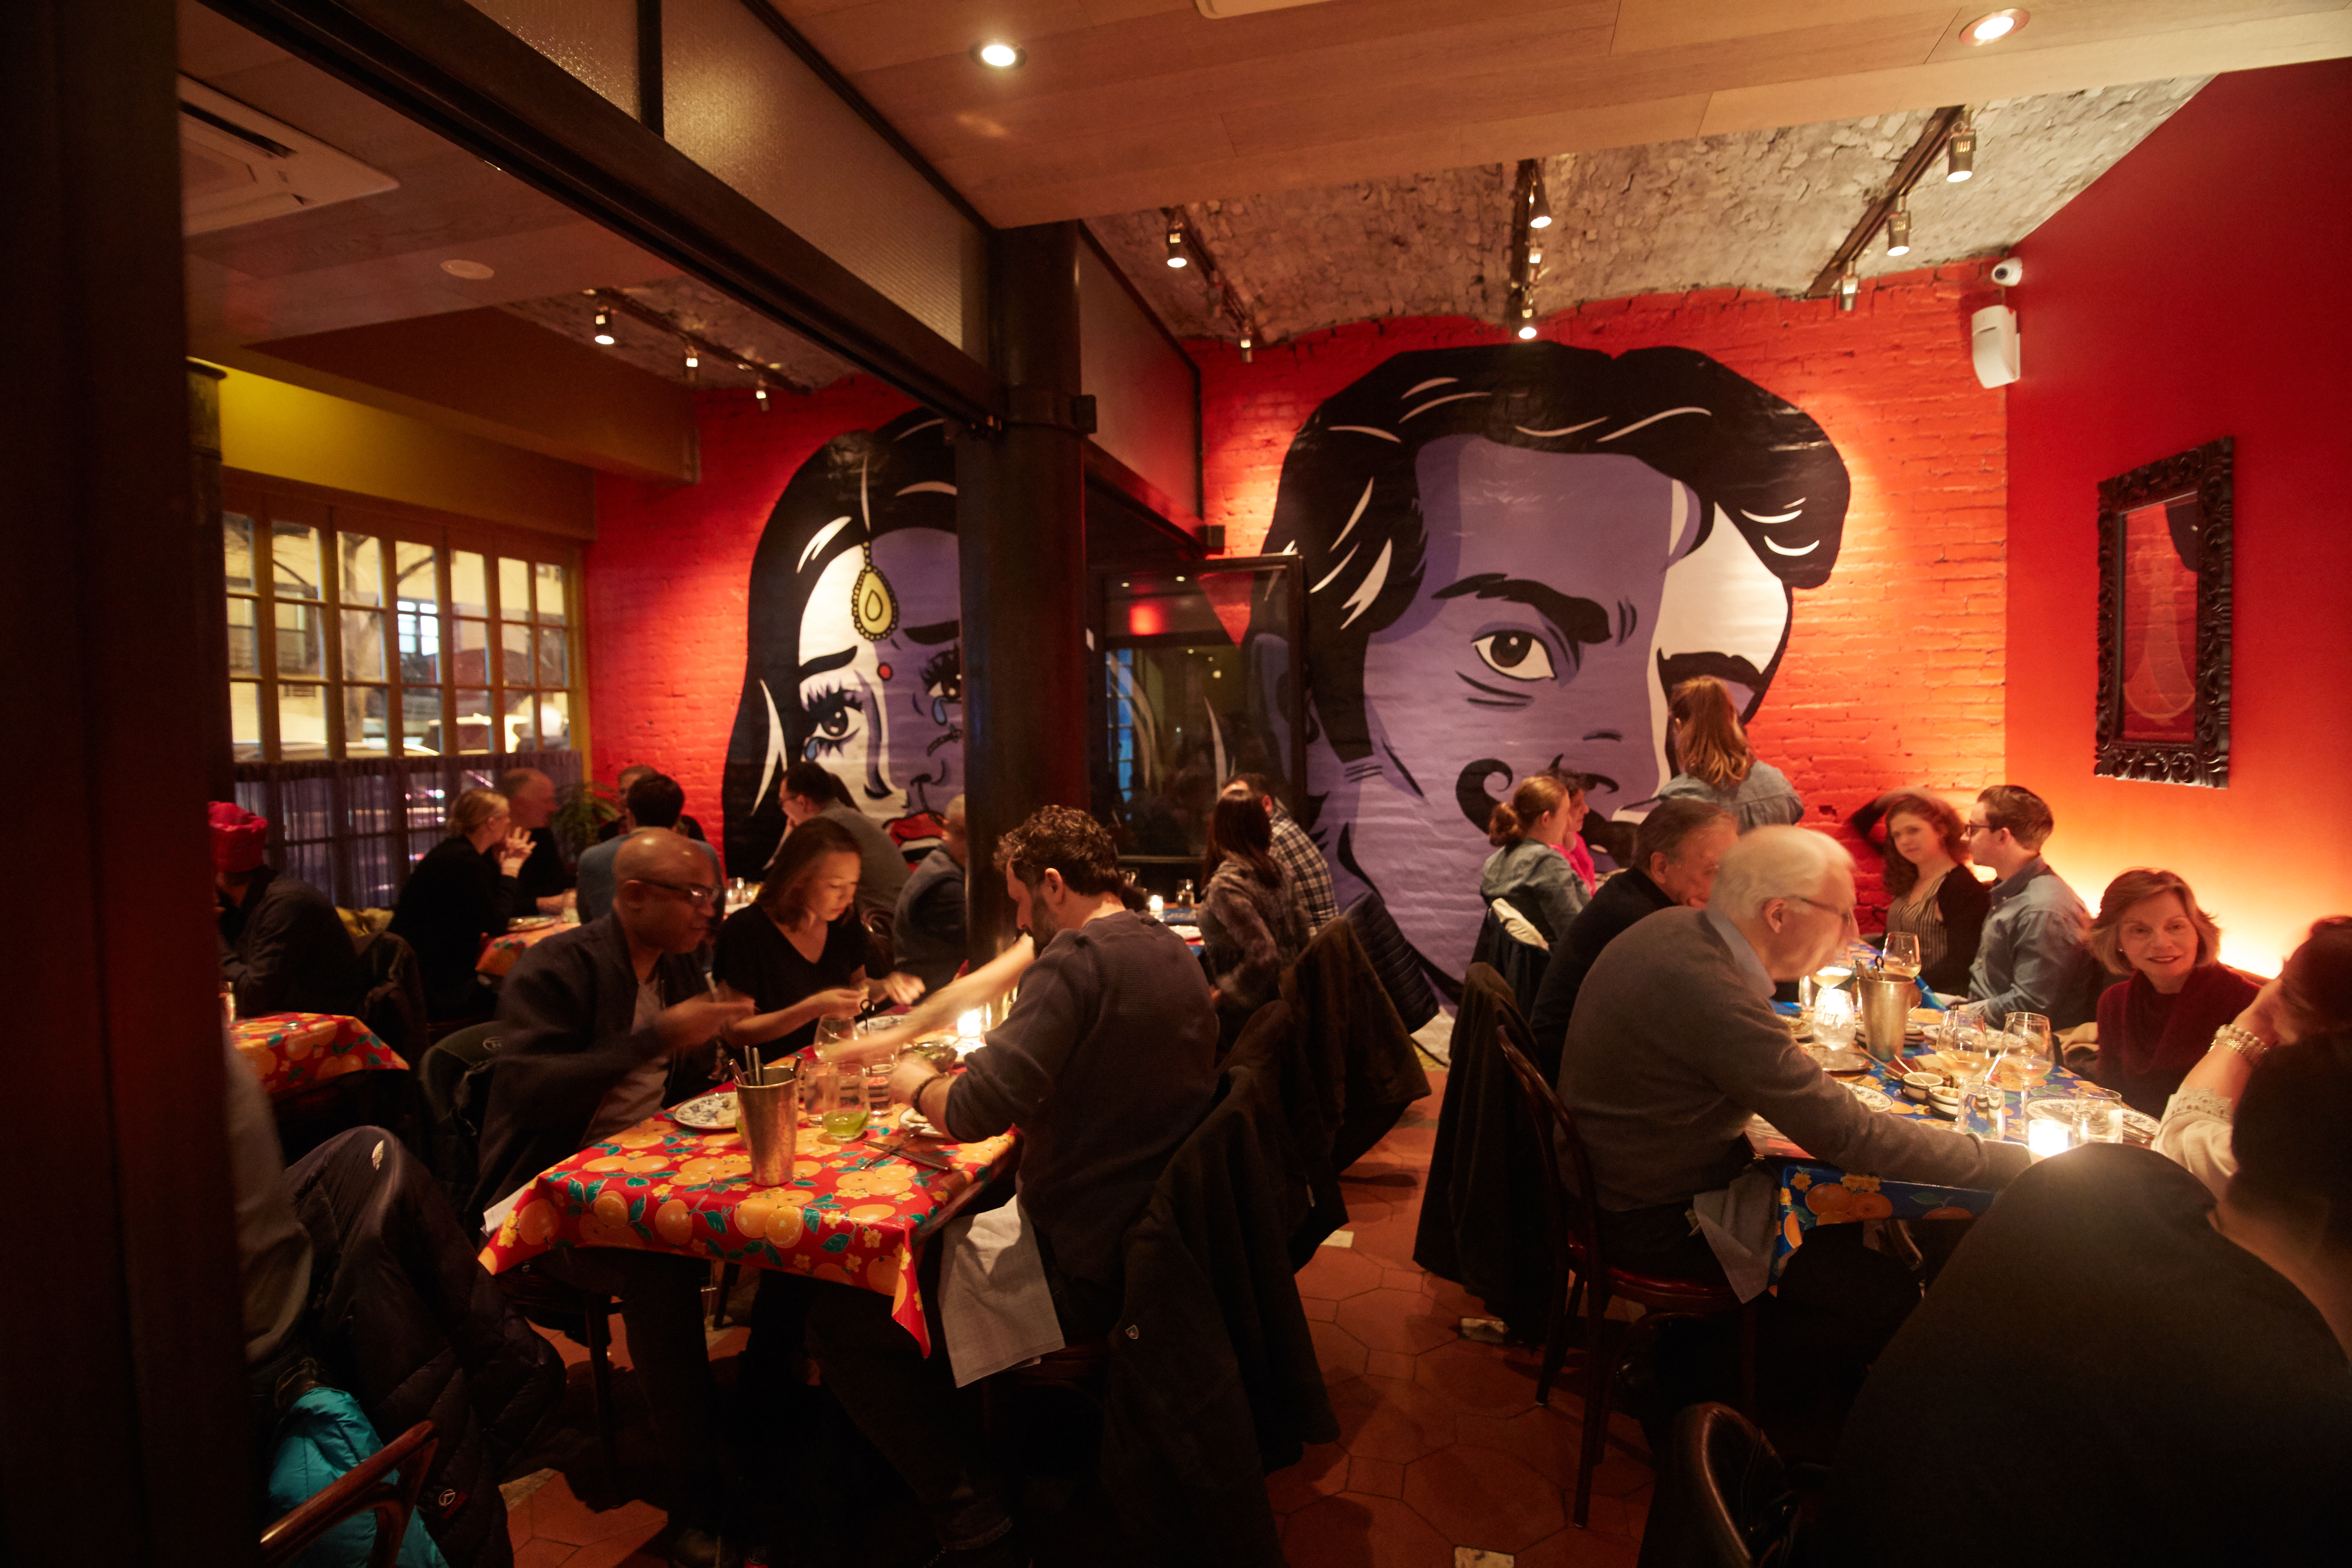 Bombay Bread Bar's dining room, with red walls and a mural of people in the back.